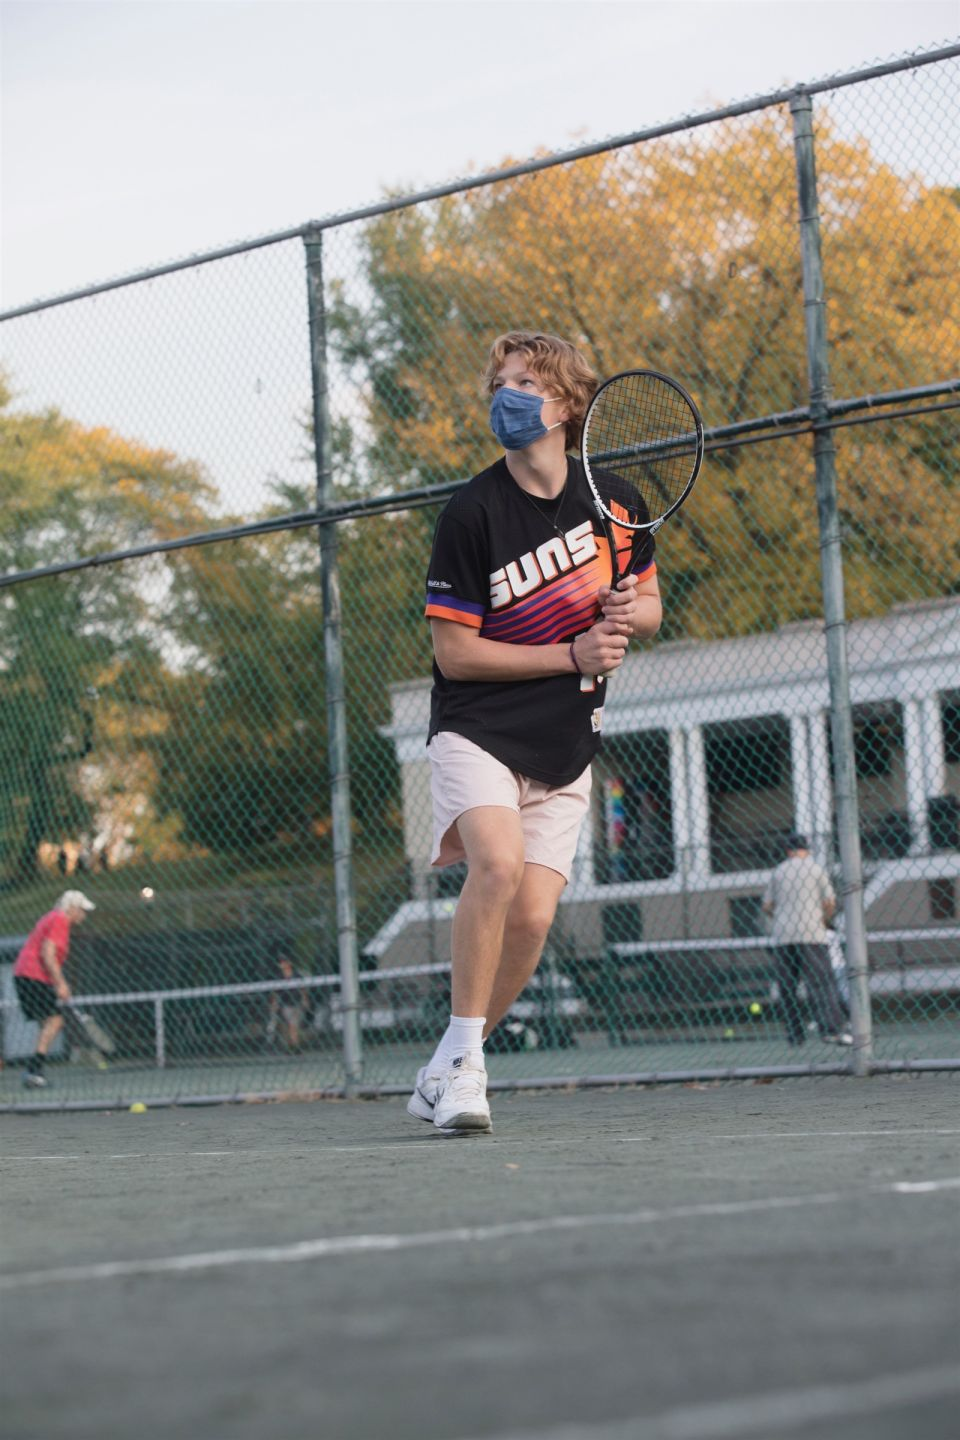 Dalton Tennis in Central Park - 1 of 34